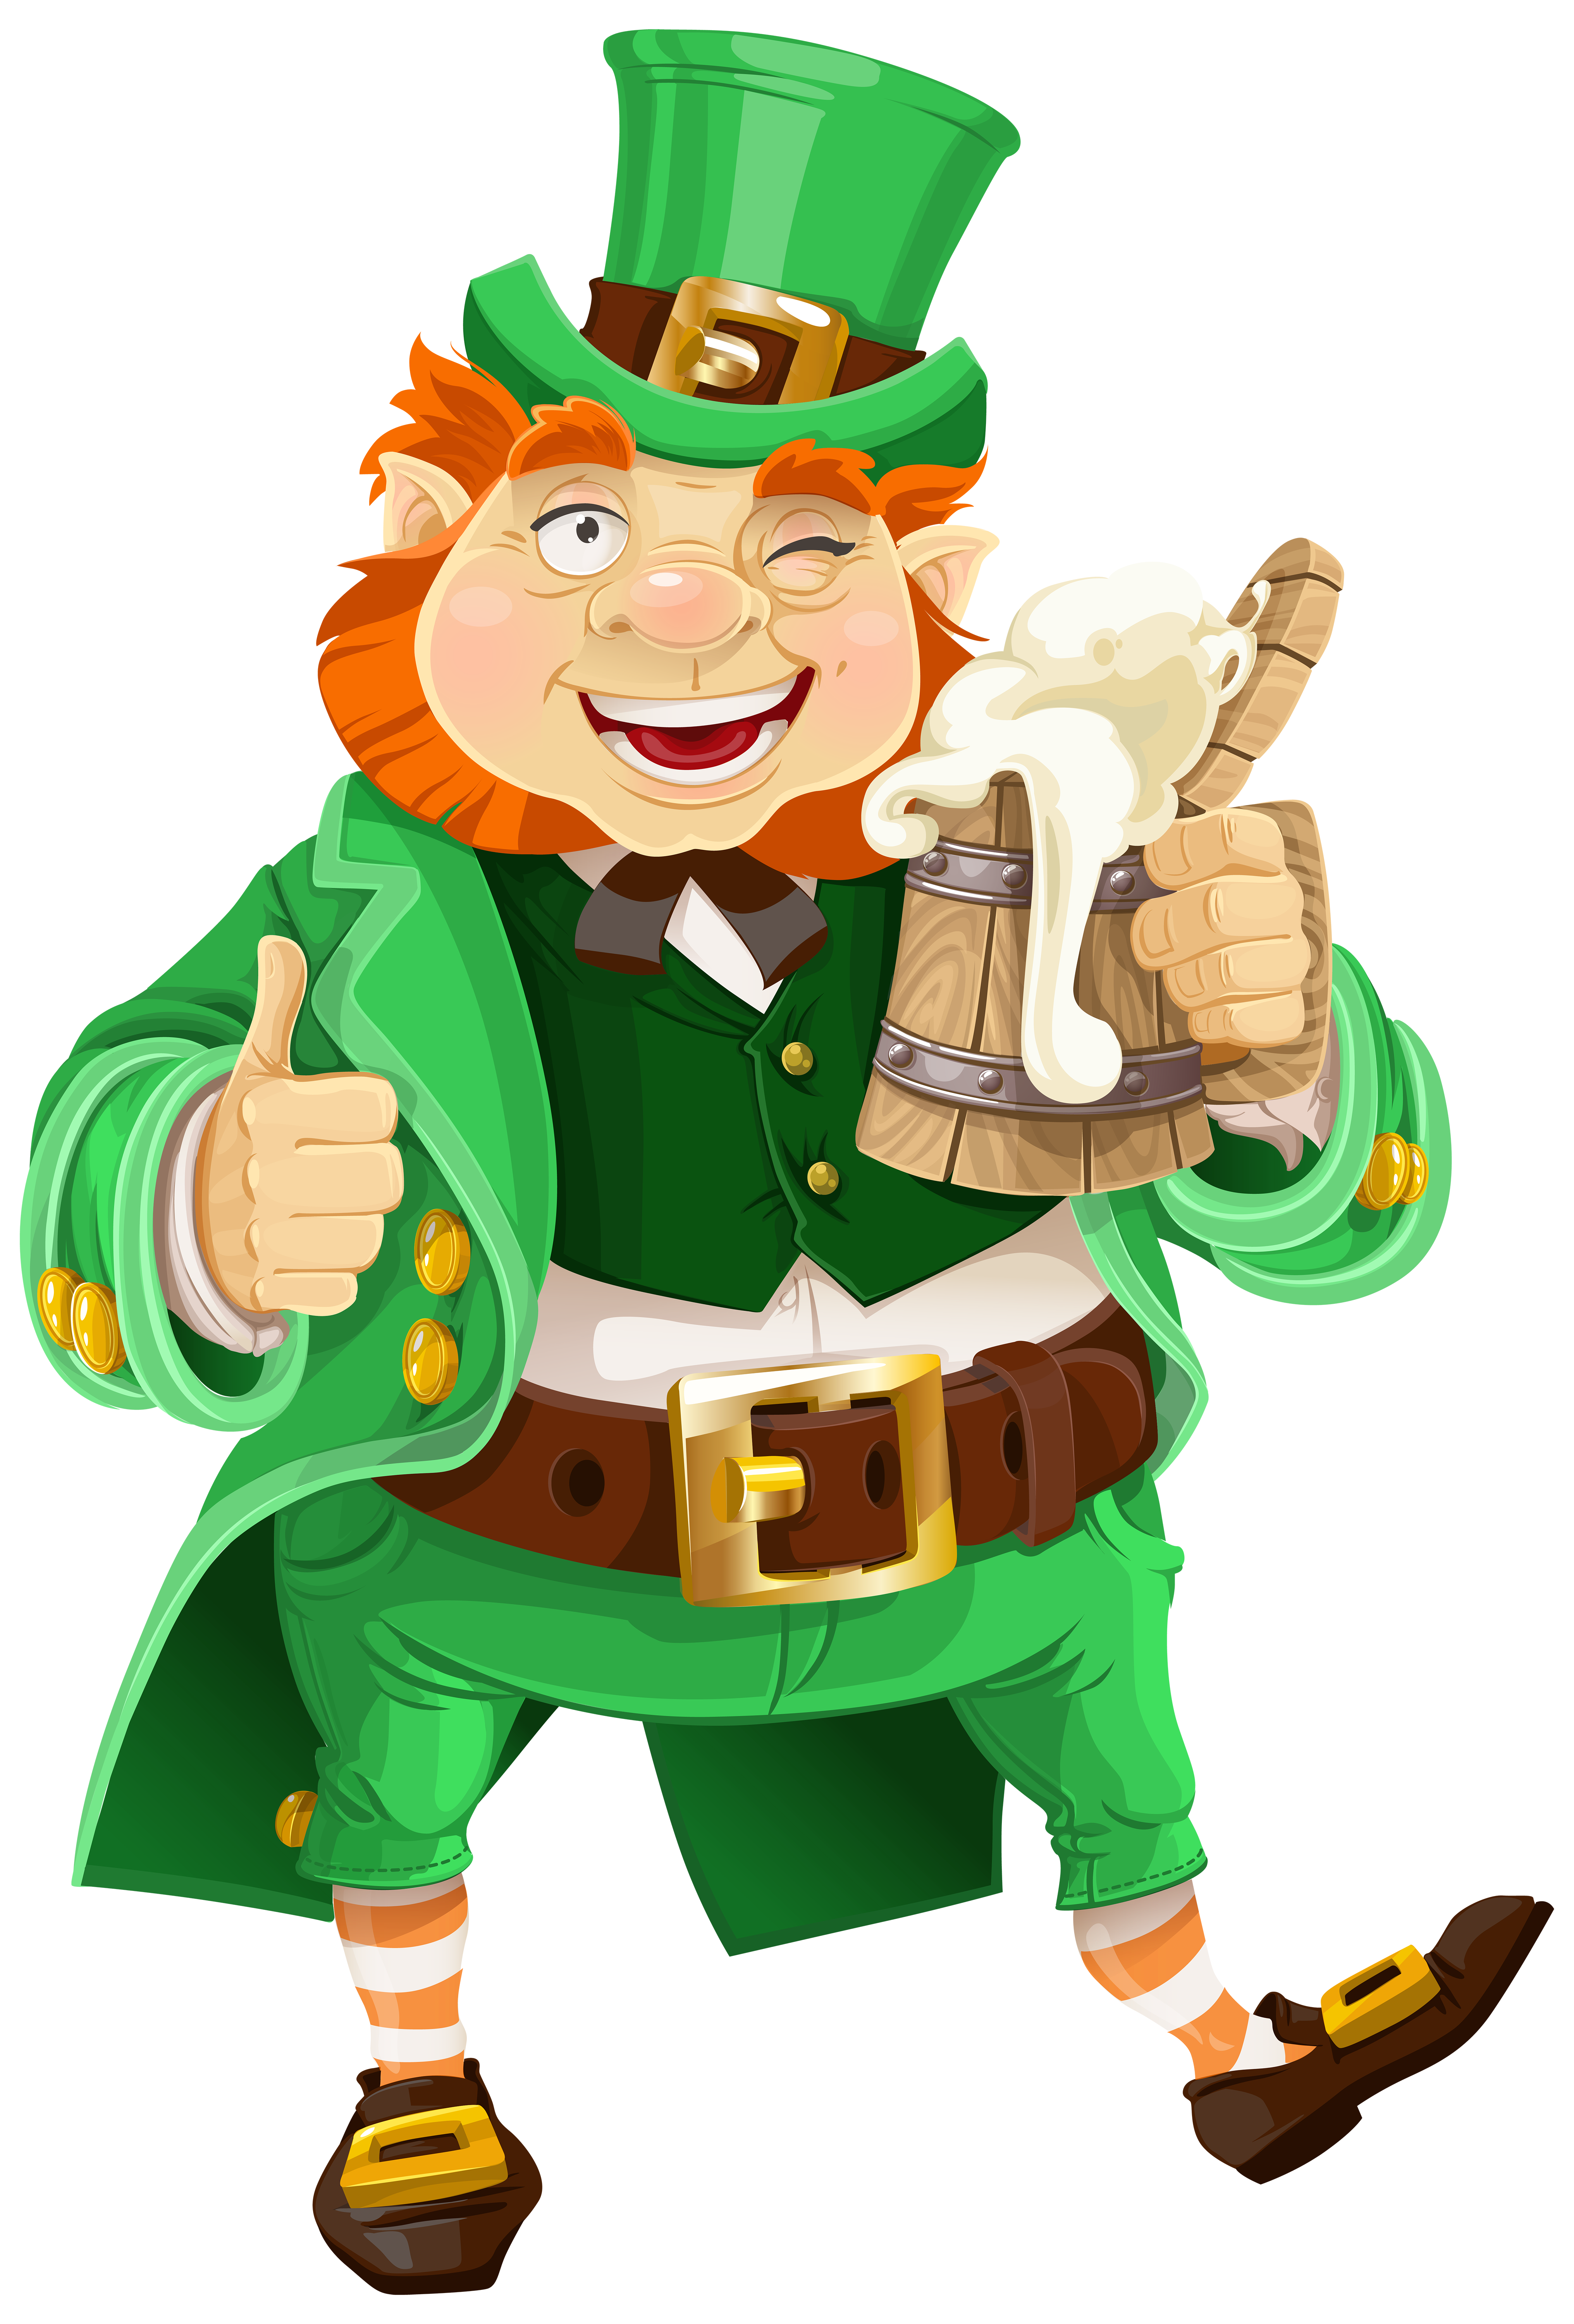 Art Food Patrick Beer Saint Leprechaun Day PNG Image